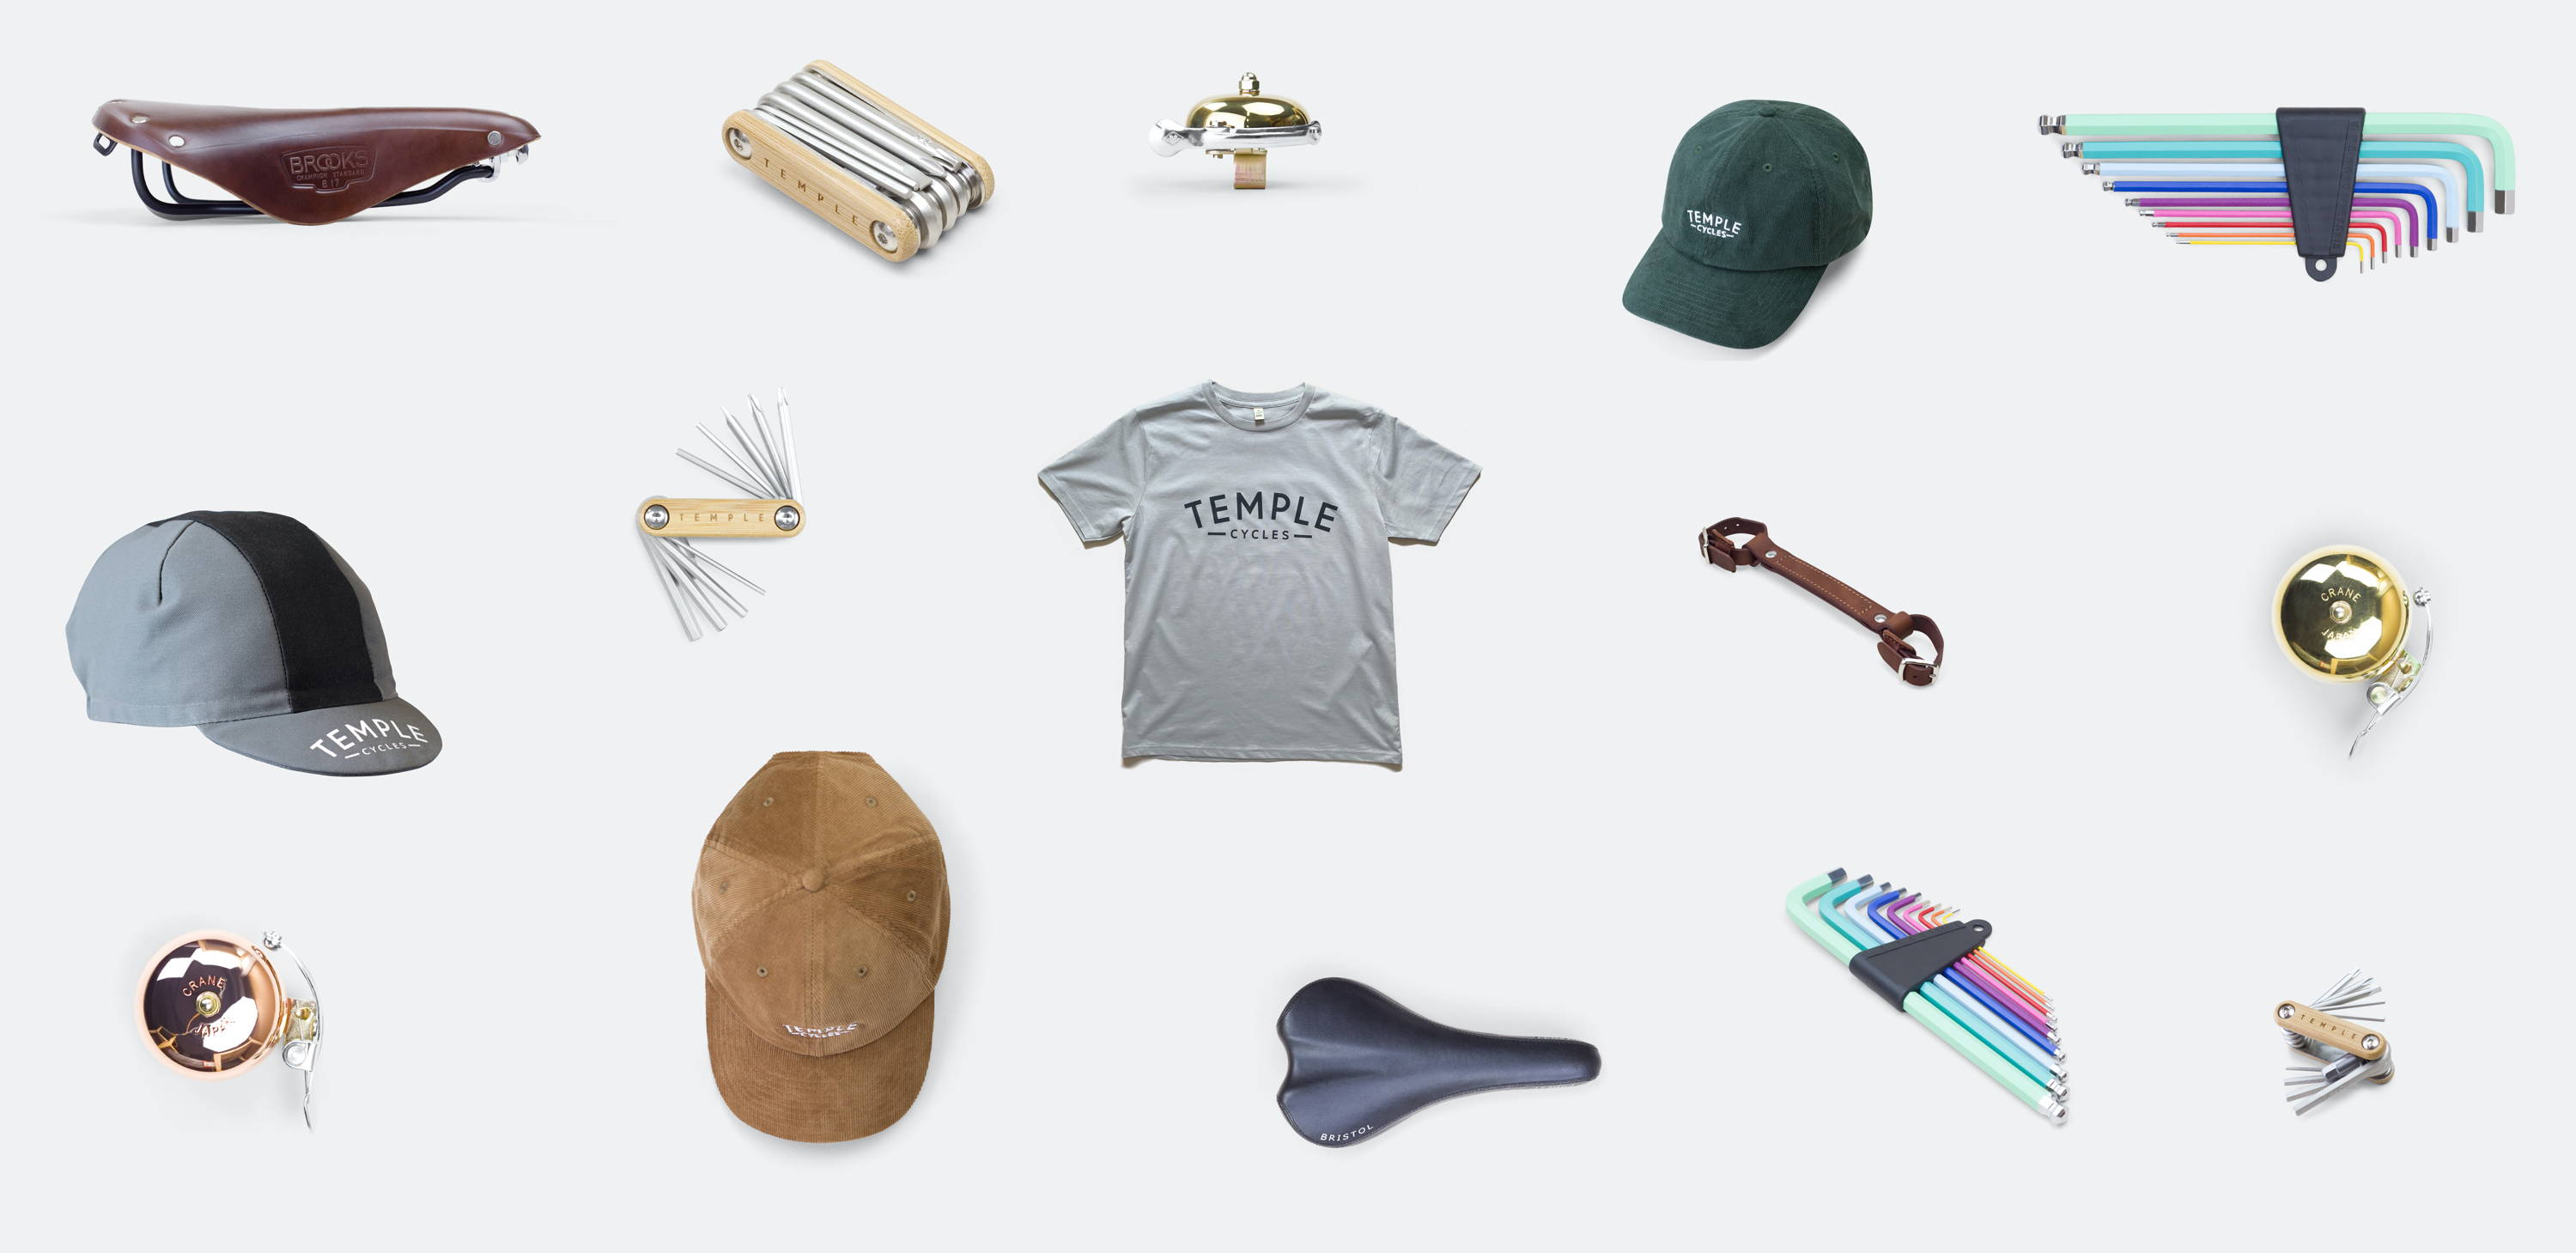 Temple Cycles Christmas Gift Guide